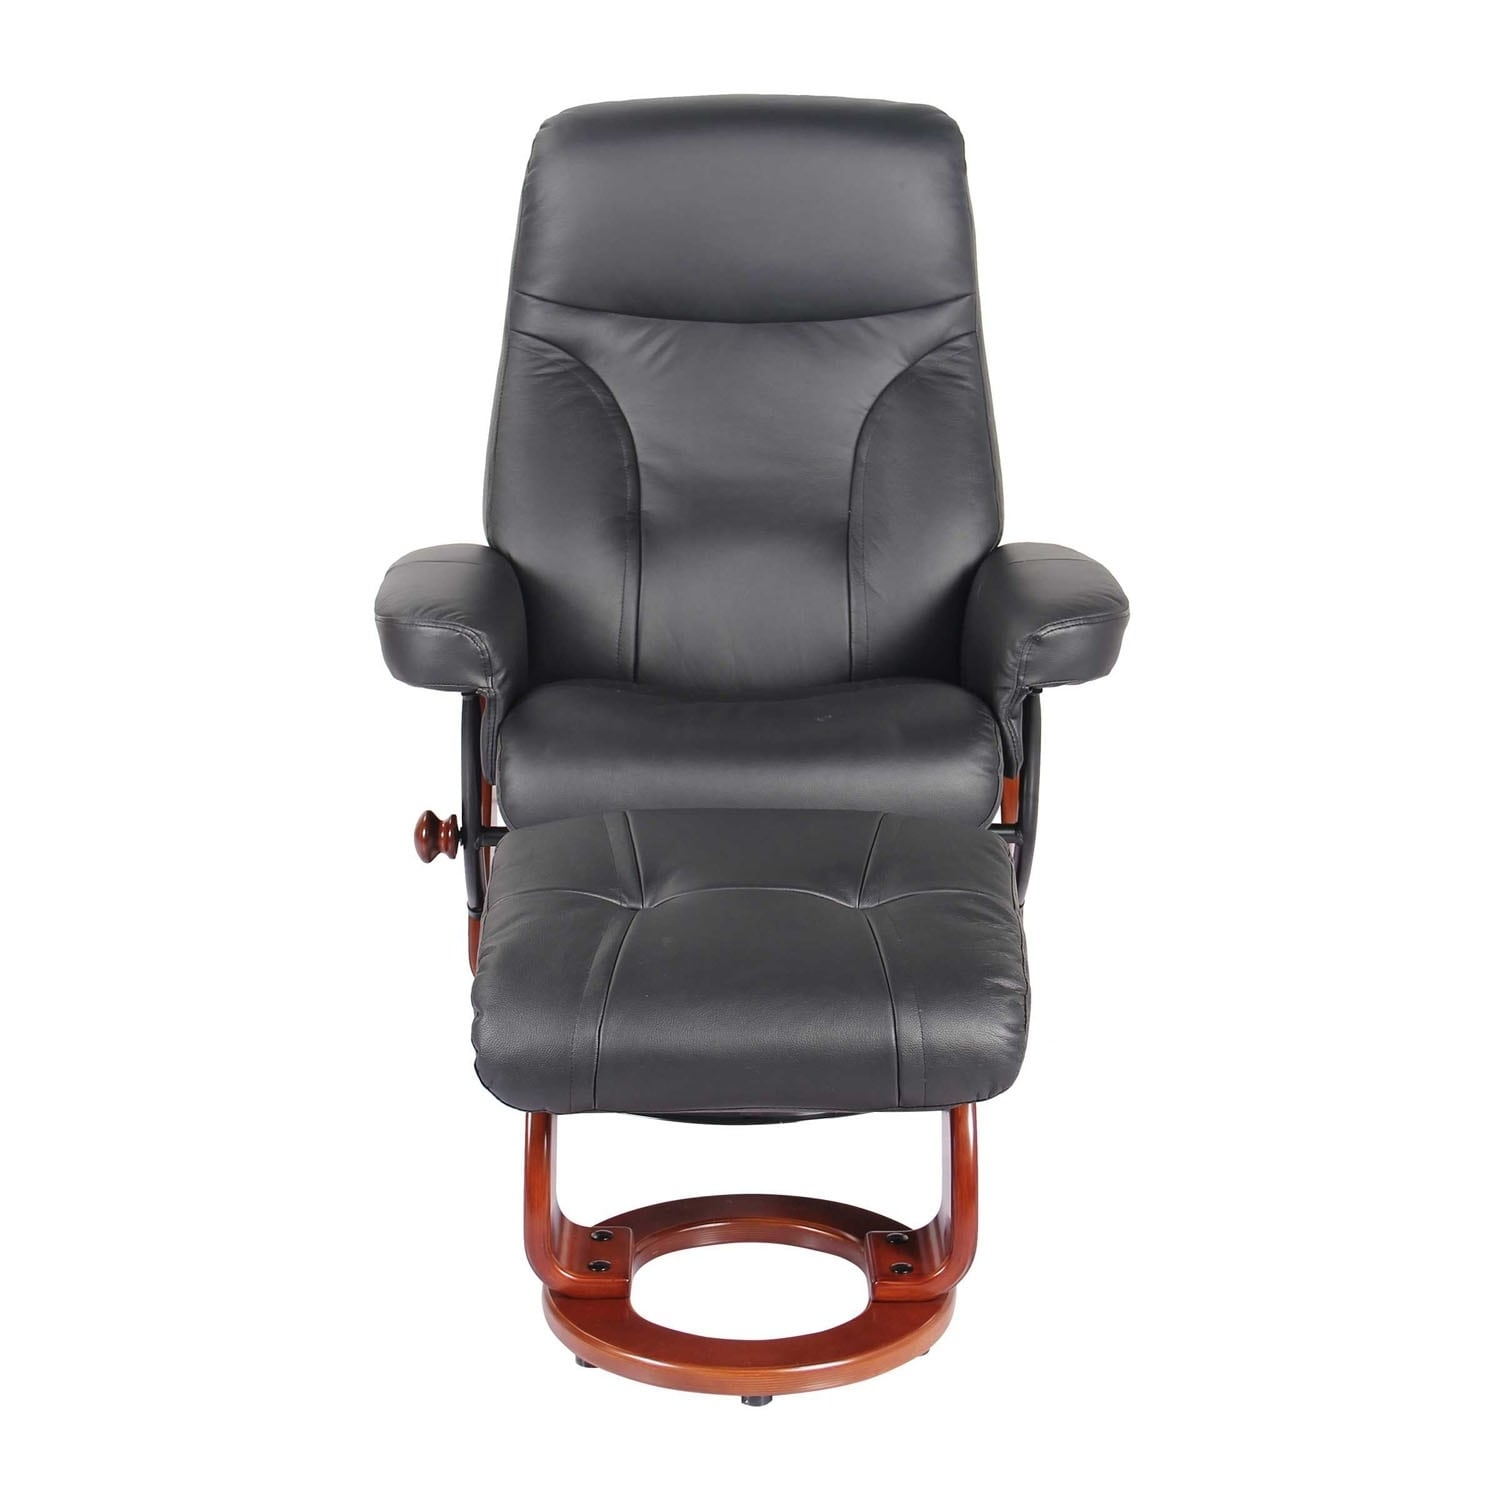 Homeroots Furniture Black Swivel Recliner Chair And Ottoman Free Shipping Today 25441653